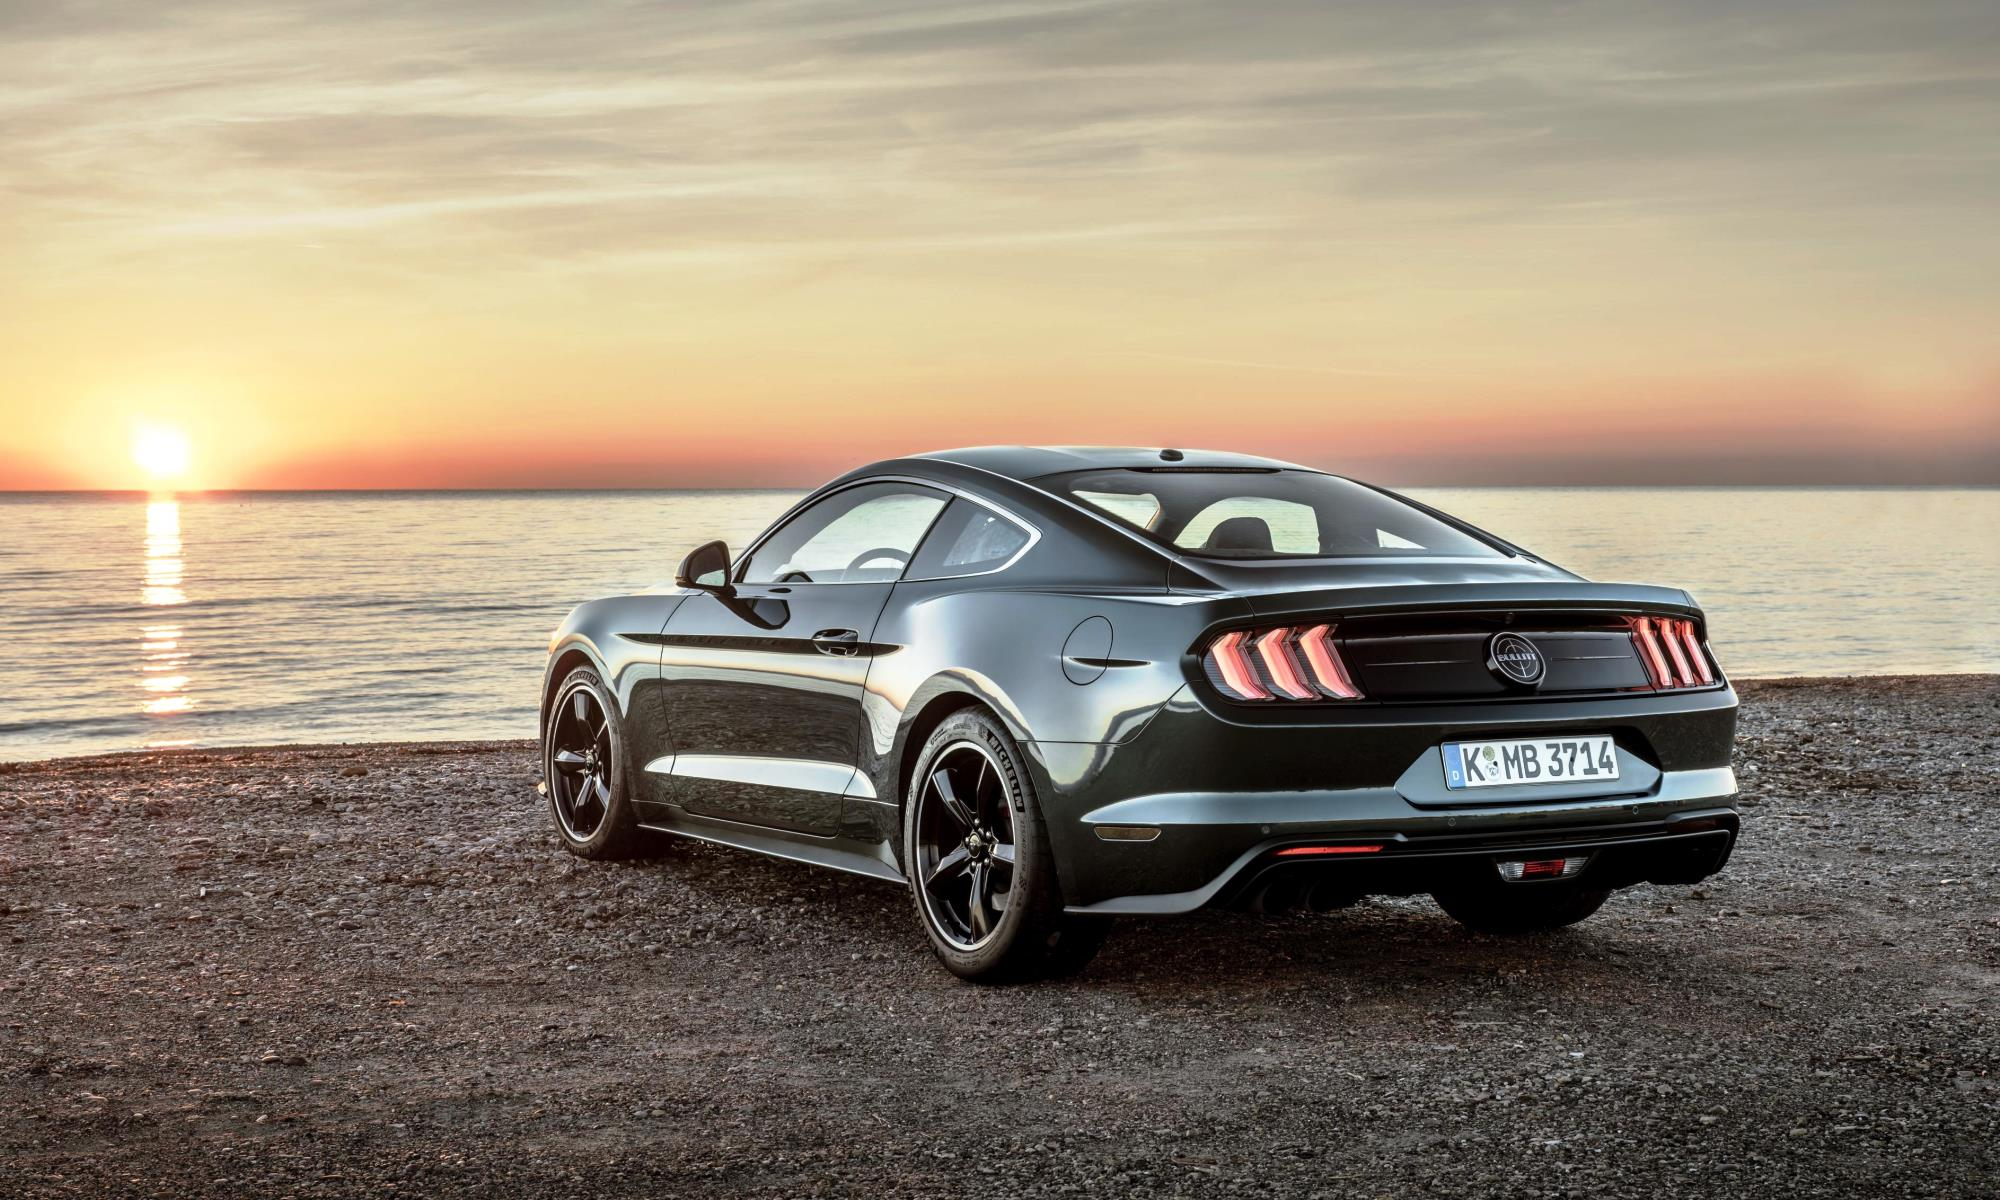 Facelifted Ford Mustang Bullitt rear